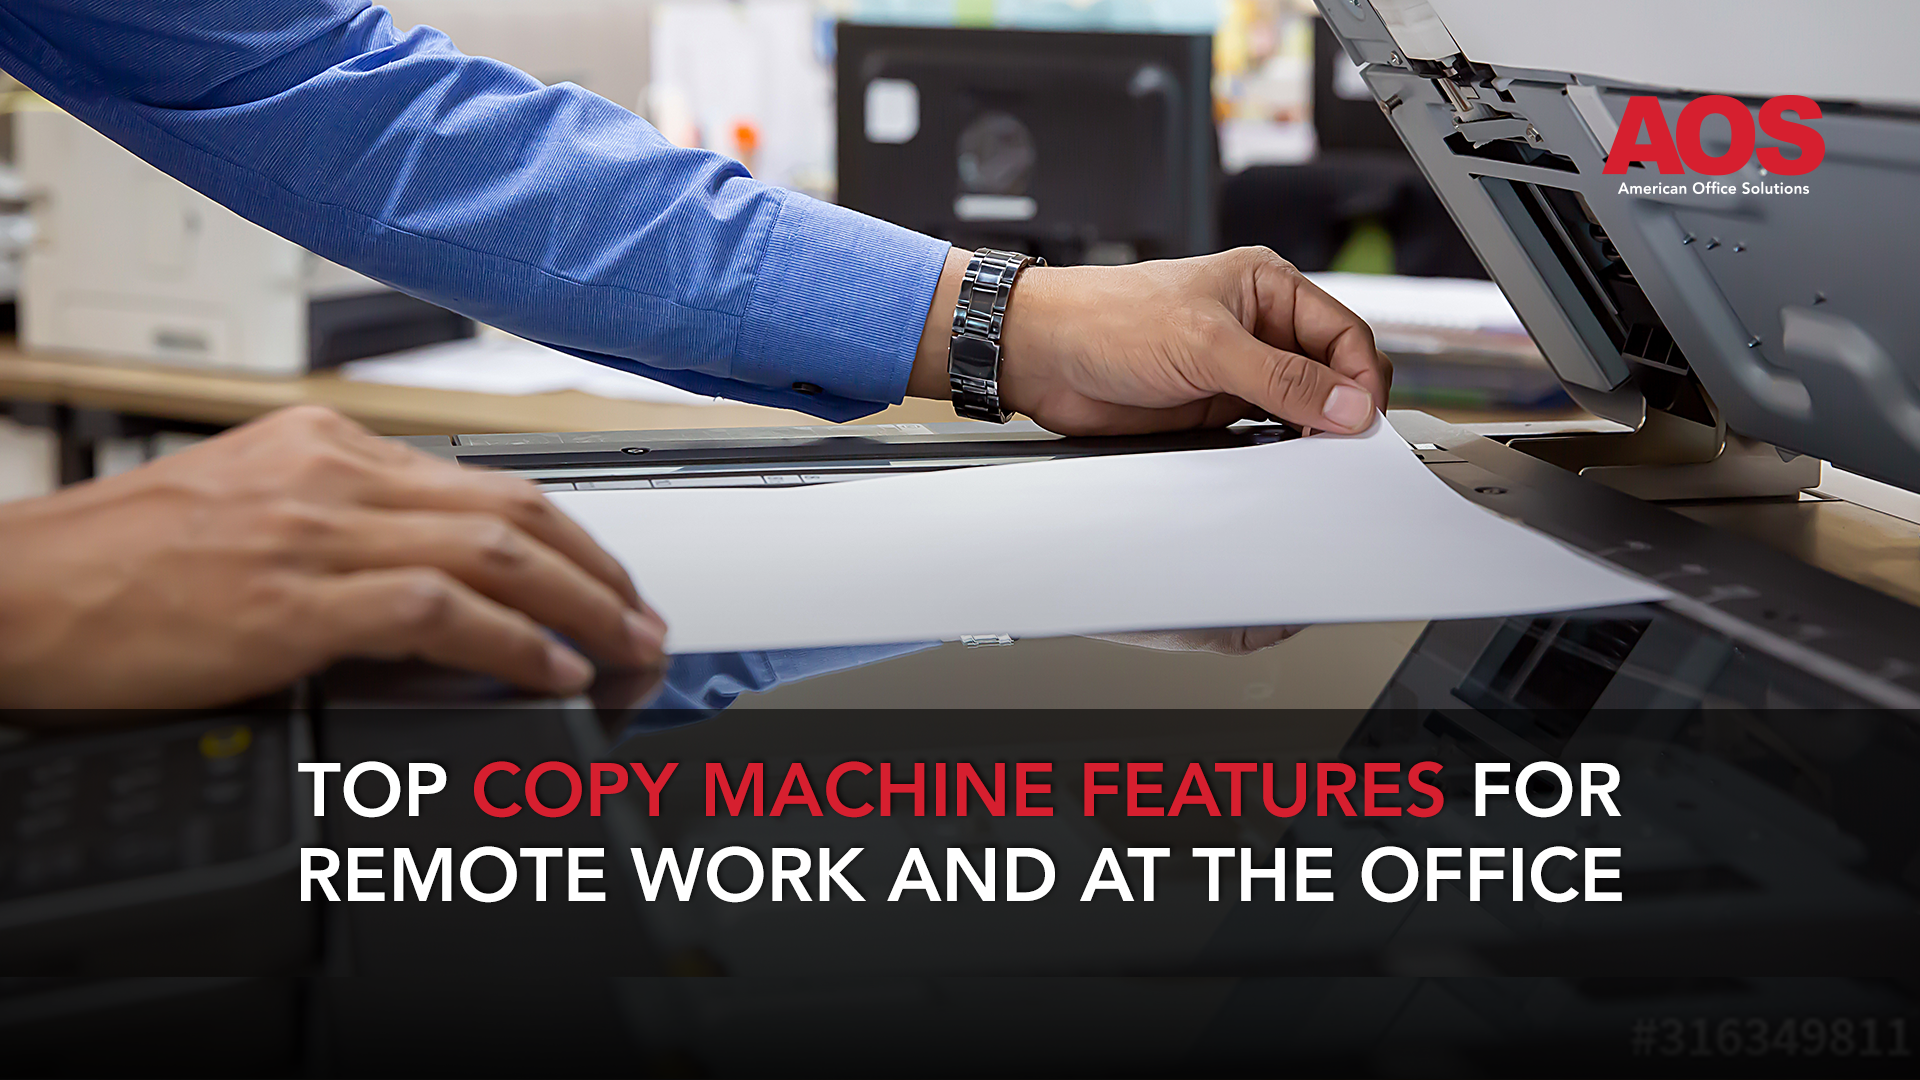 Top Printer and Copy Machine Features for Work From Home and at the Office